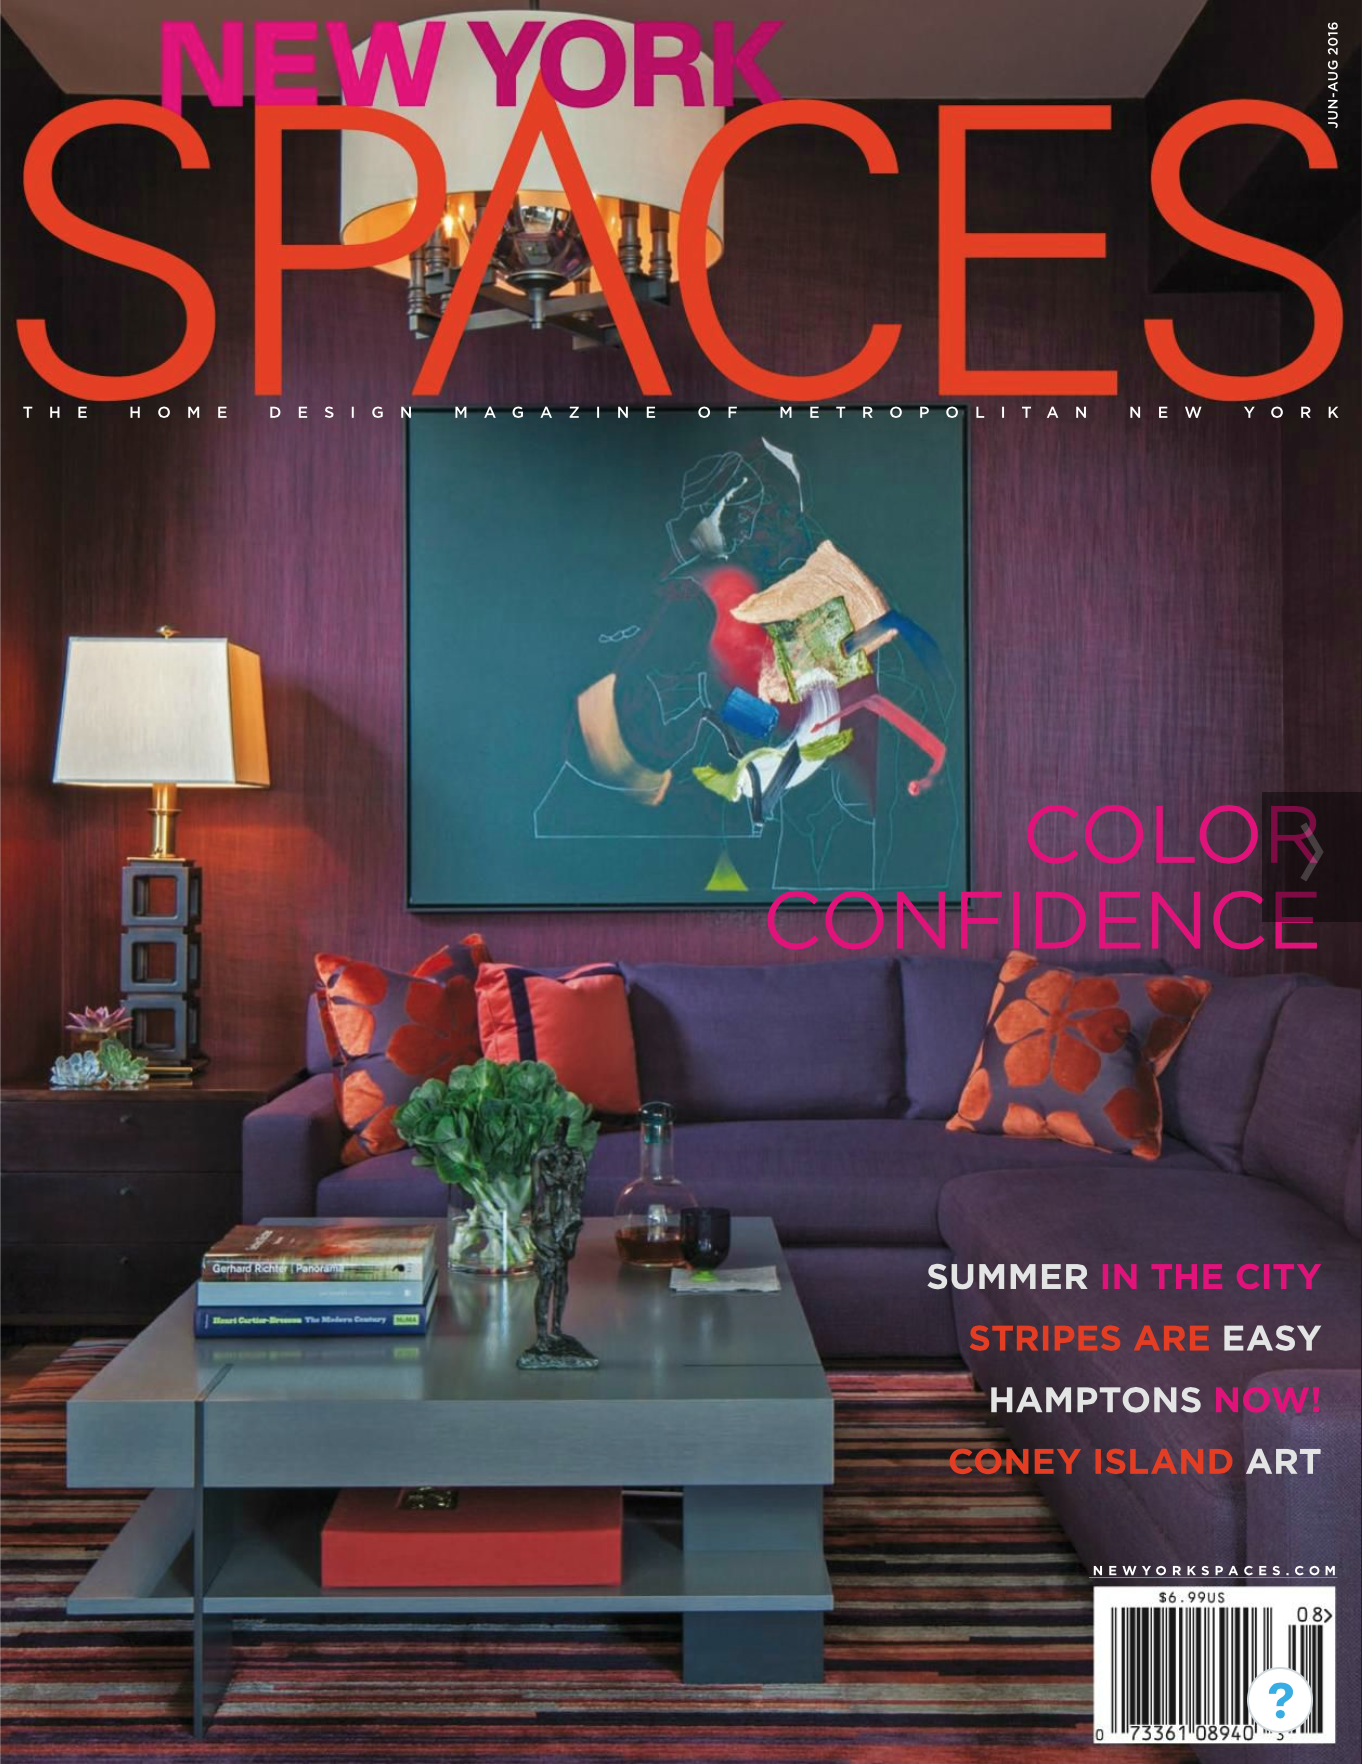 New York Spaces Summer 2016 Issue Cover